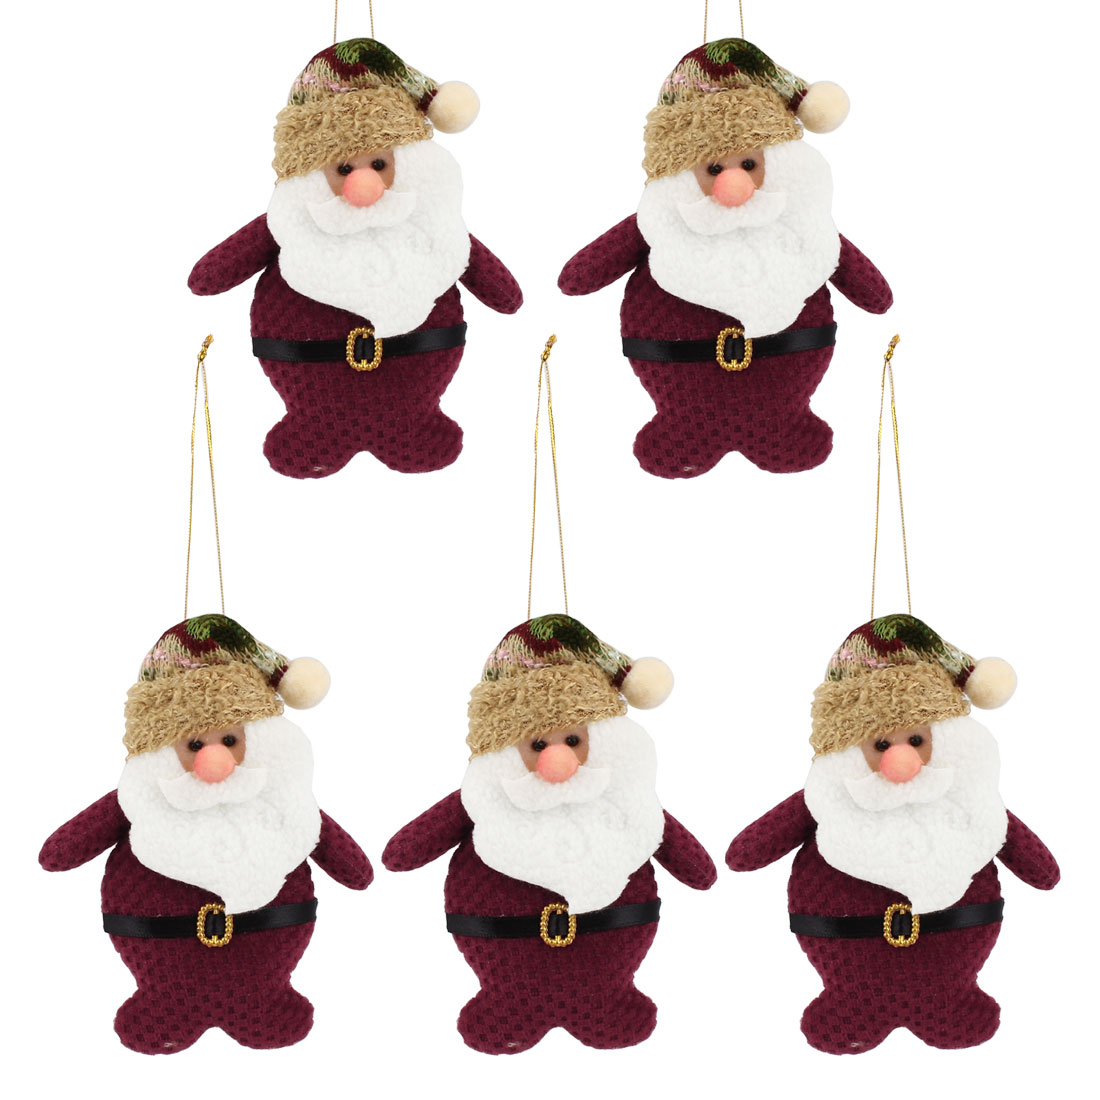 Long Pointed Cap Accent Xmas Santa Claus Pendant Burgundy 5pcs for Door Christmas Tree Hanging Decor